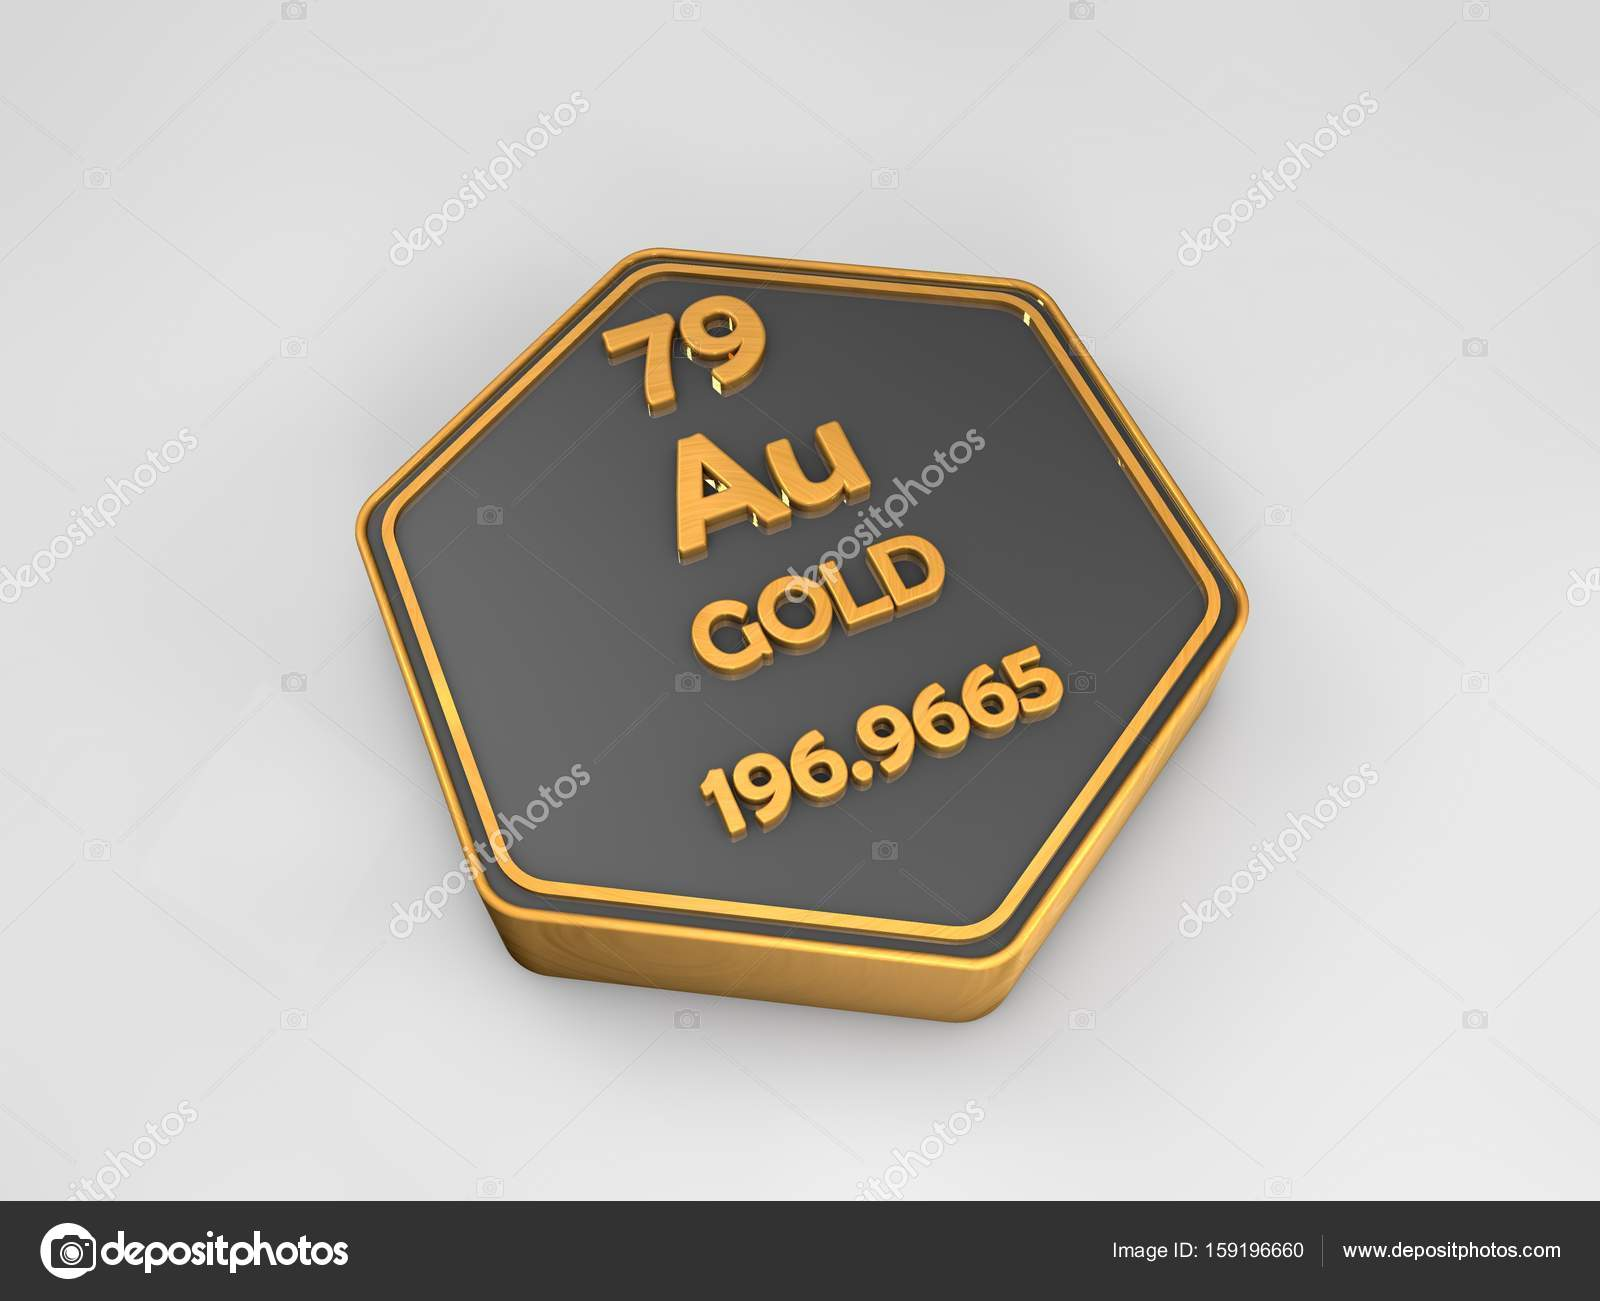 Gold au chemical element periodic table hexagonal shape 3d gold au chemical element periodic table hexagonal shape 3d render stock photo urtaz Choice Image